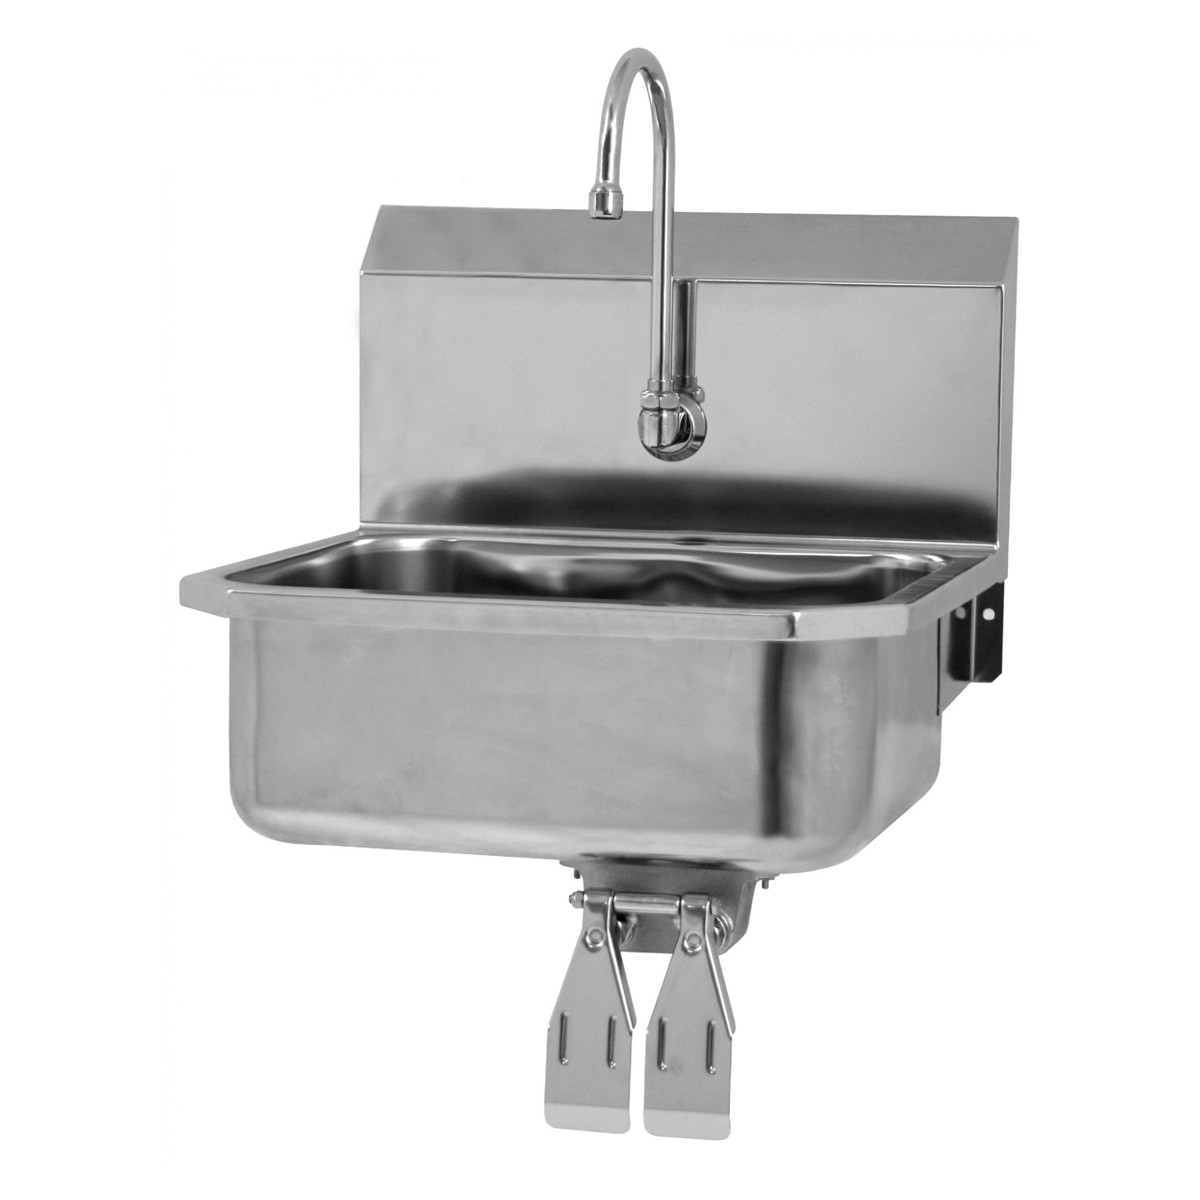 sanilav wall mount sink with knee valves